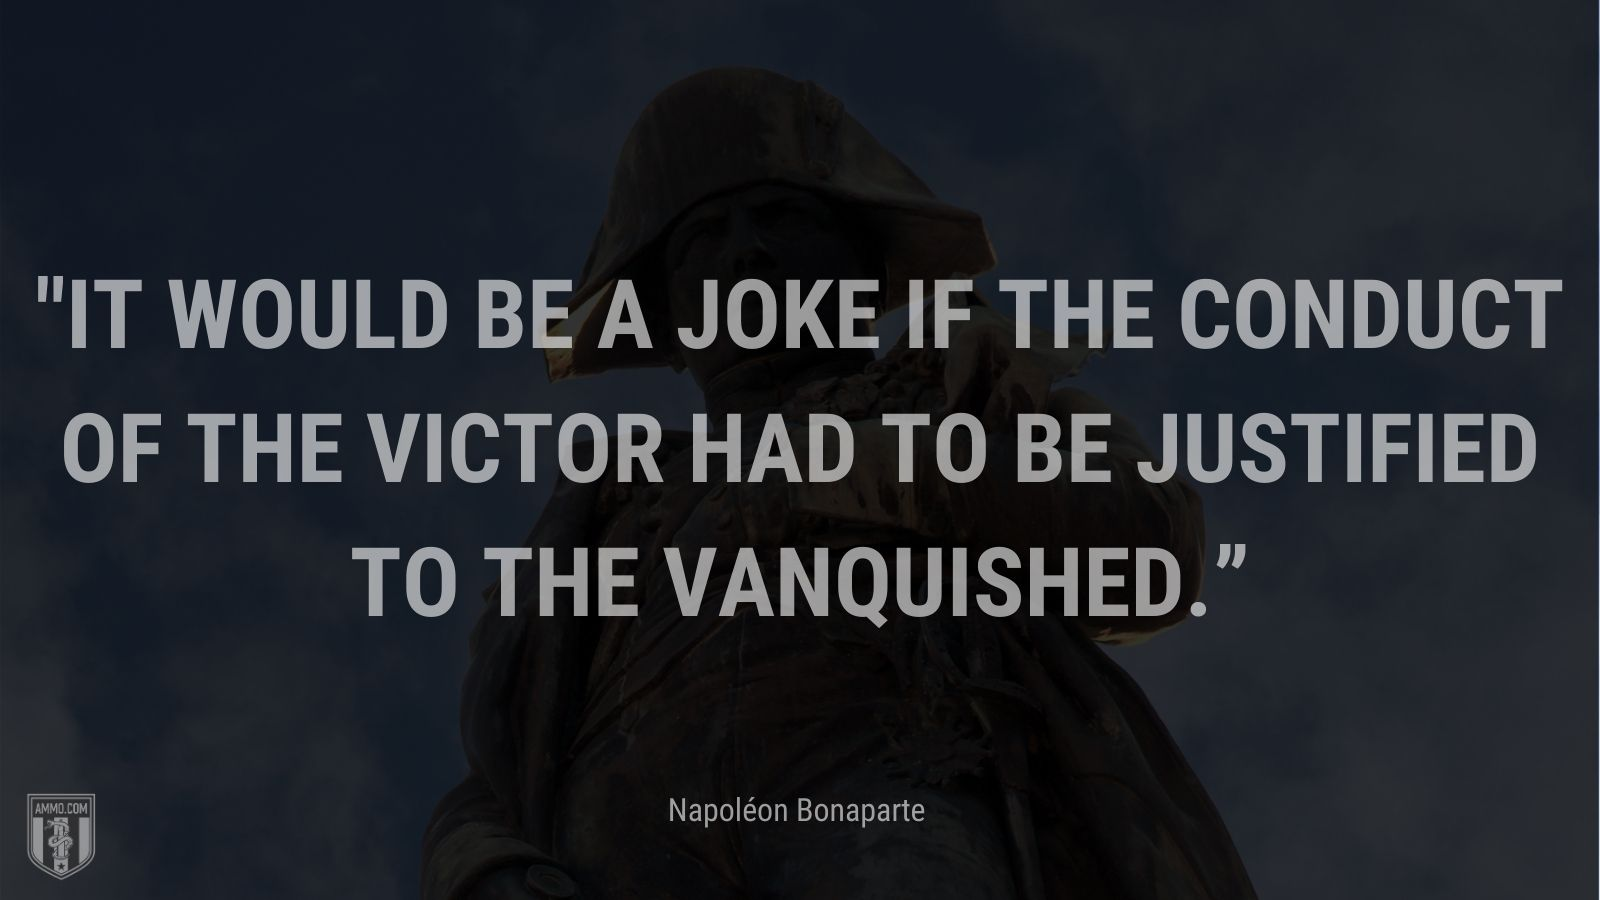 """""""It would be a joke if the conduct of the victor had to be justified to the vanquished."""" - Napoléon Bonaparte"""